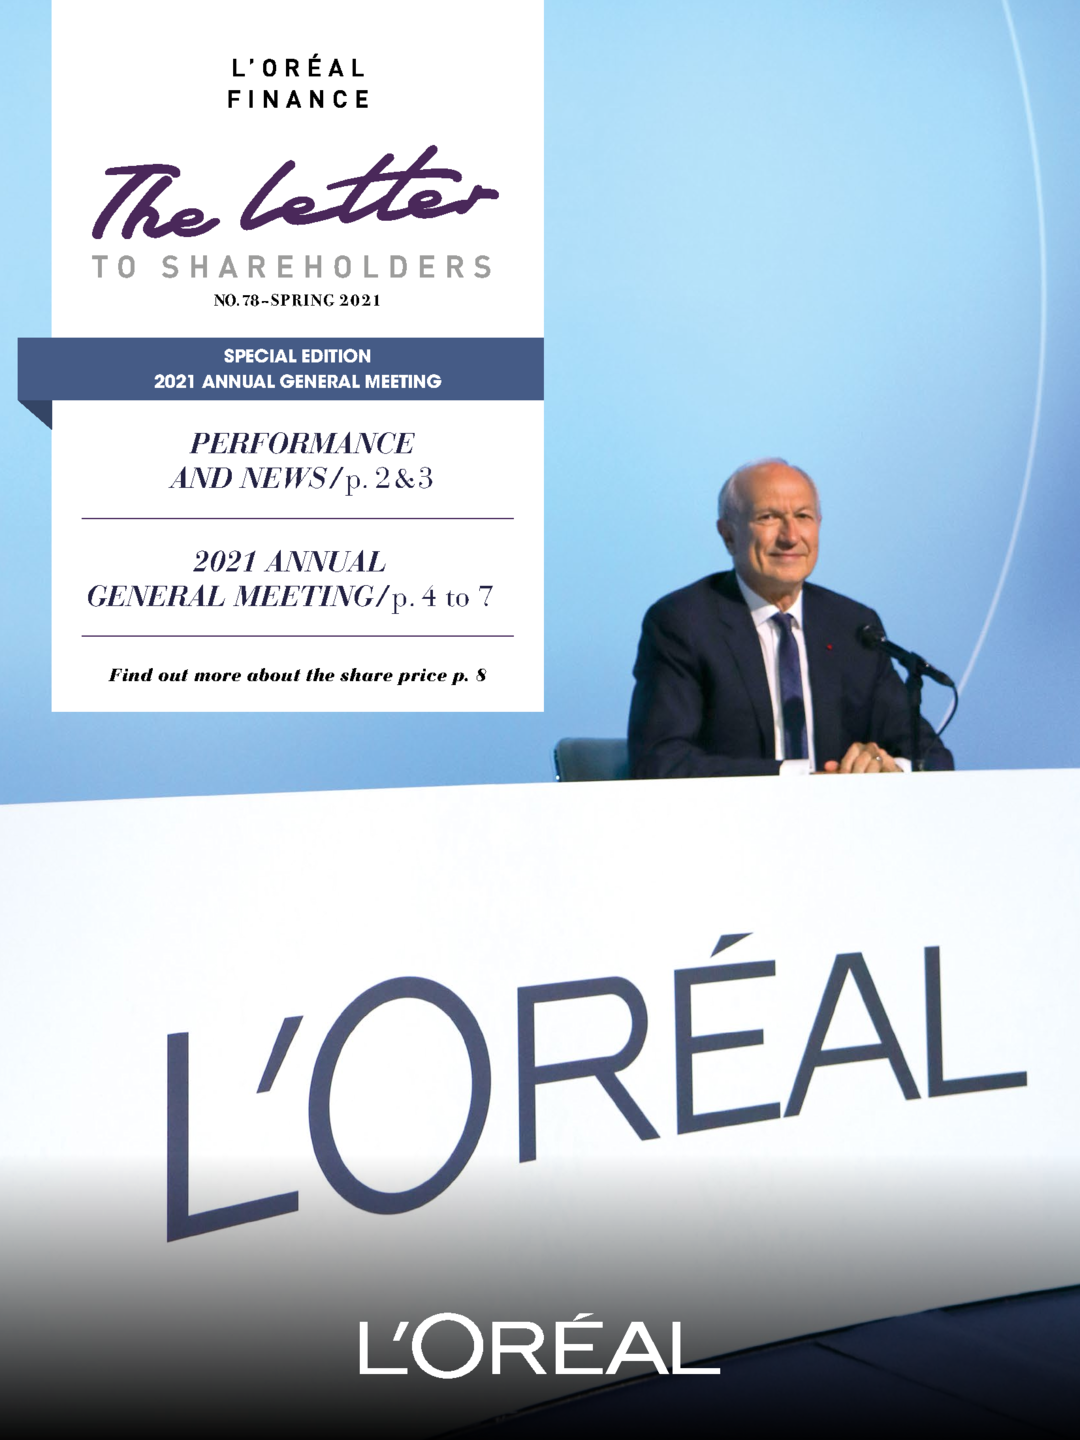 """Cover - """"The letter to shareholders - N°78 - Spring 2021"""""""